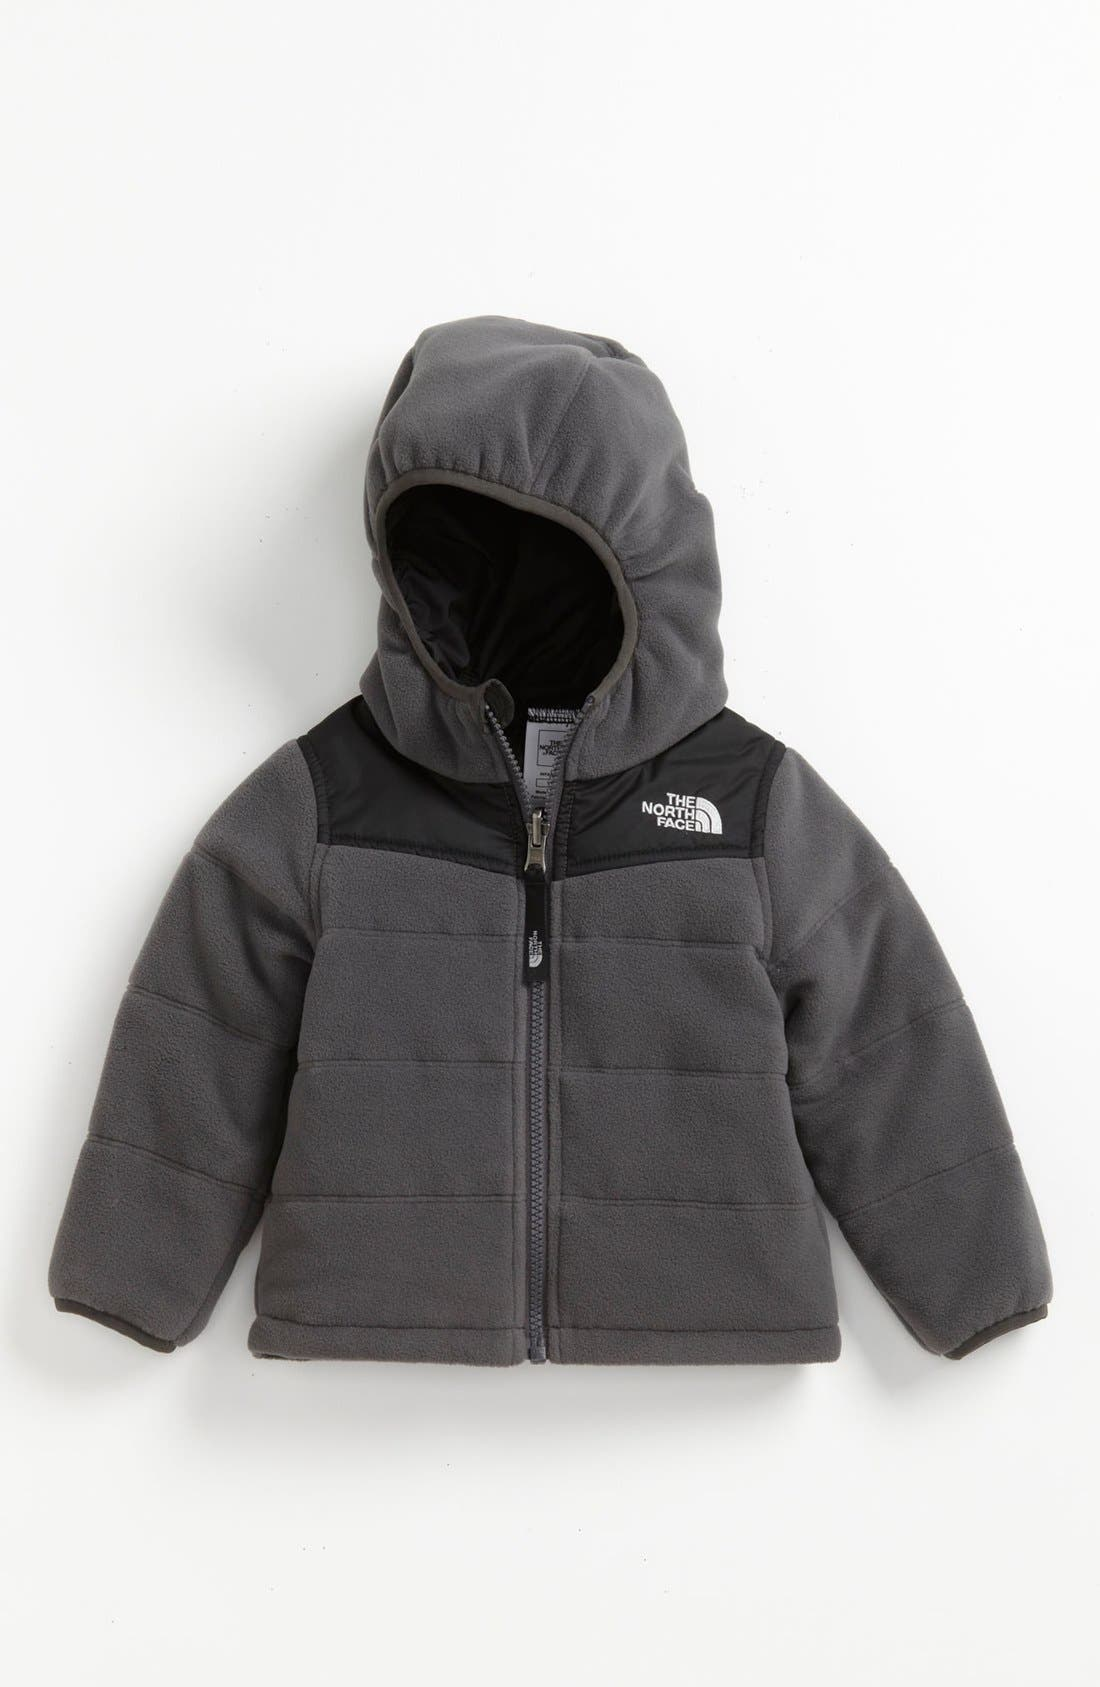 Alternate Image 1 Selected - The North Face 'True or False' Reversible Jacket (Baby Boys)